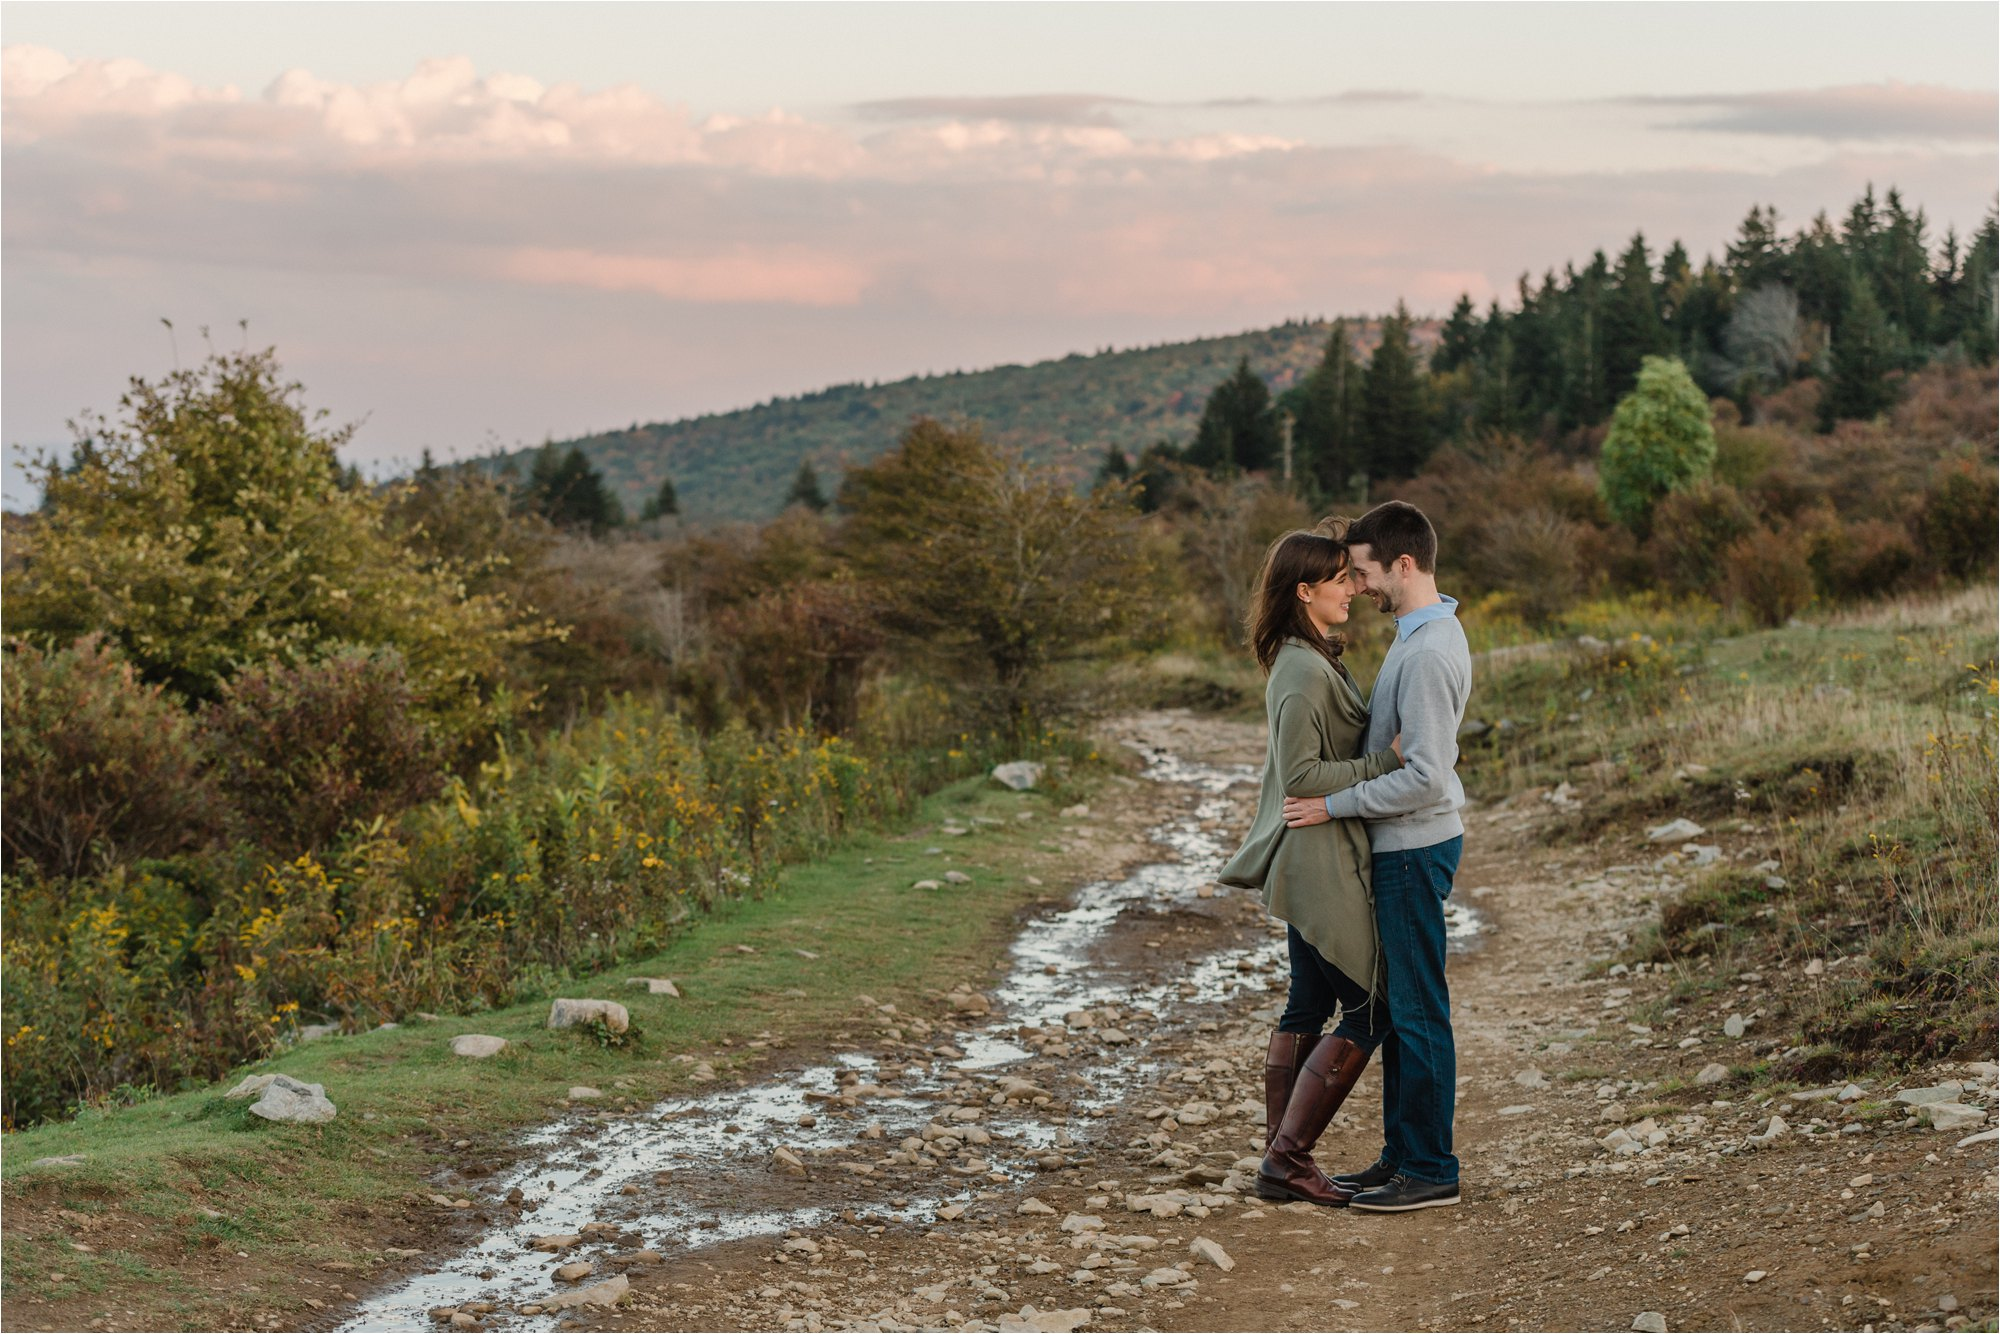 Engagement Photos at Blue Ridge Mountains